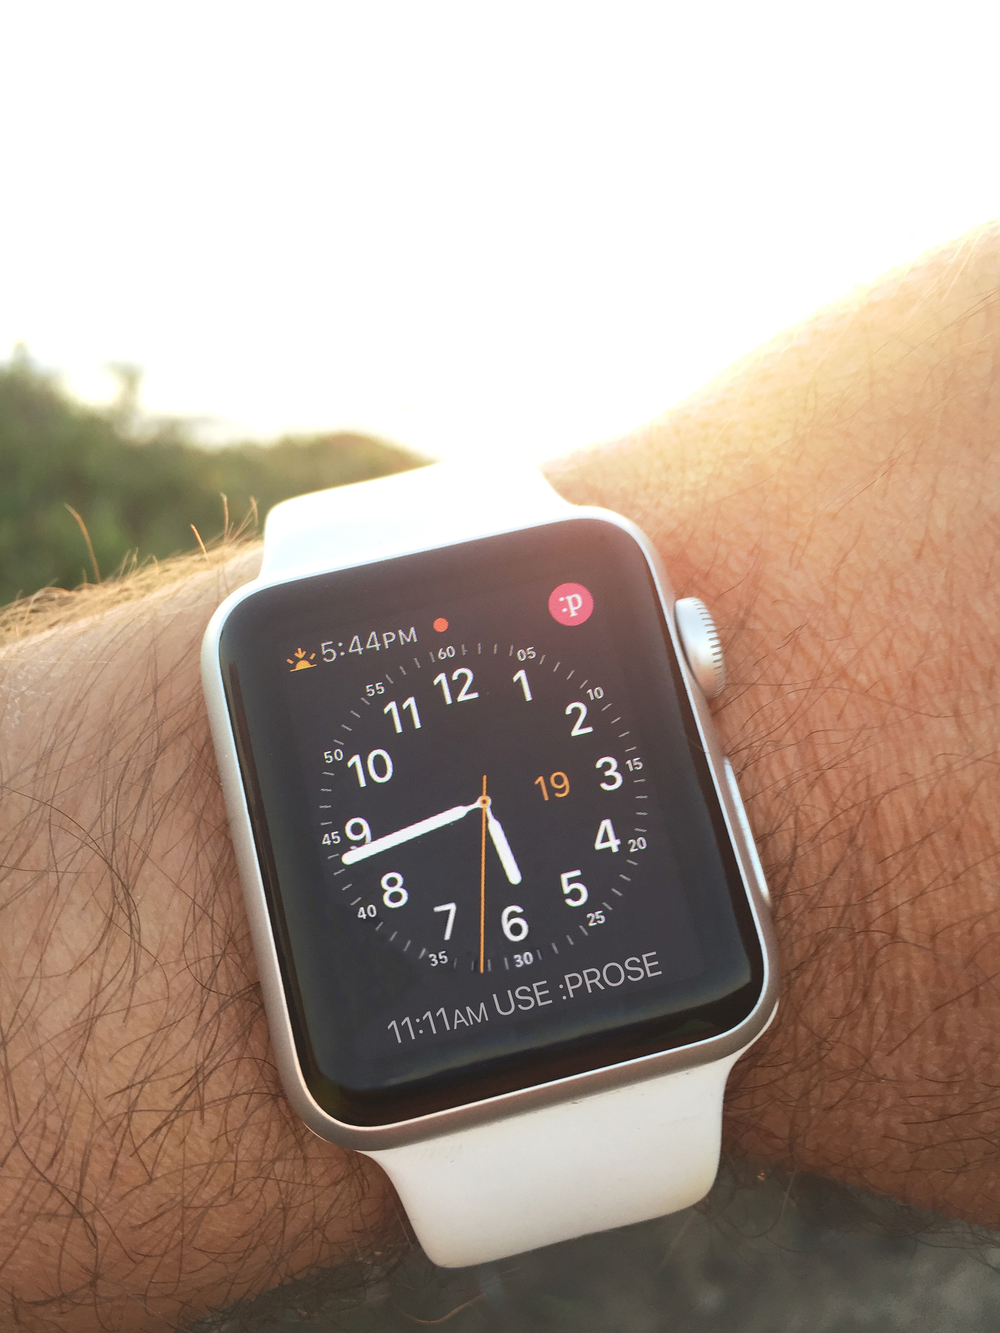 :prose on Apple Watch. Quick launcher icon available on clock face.